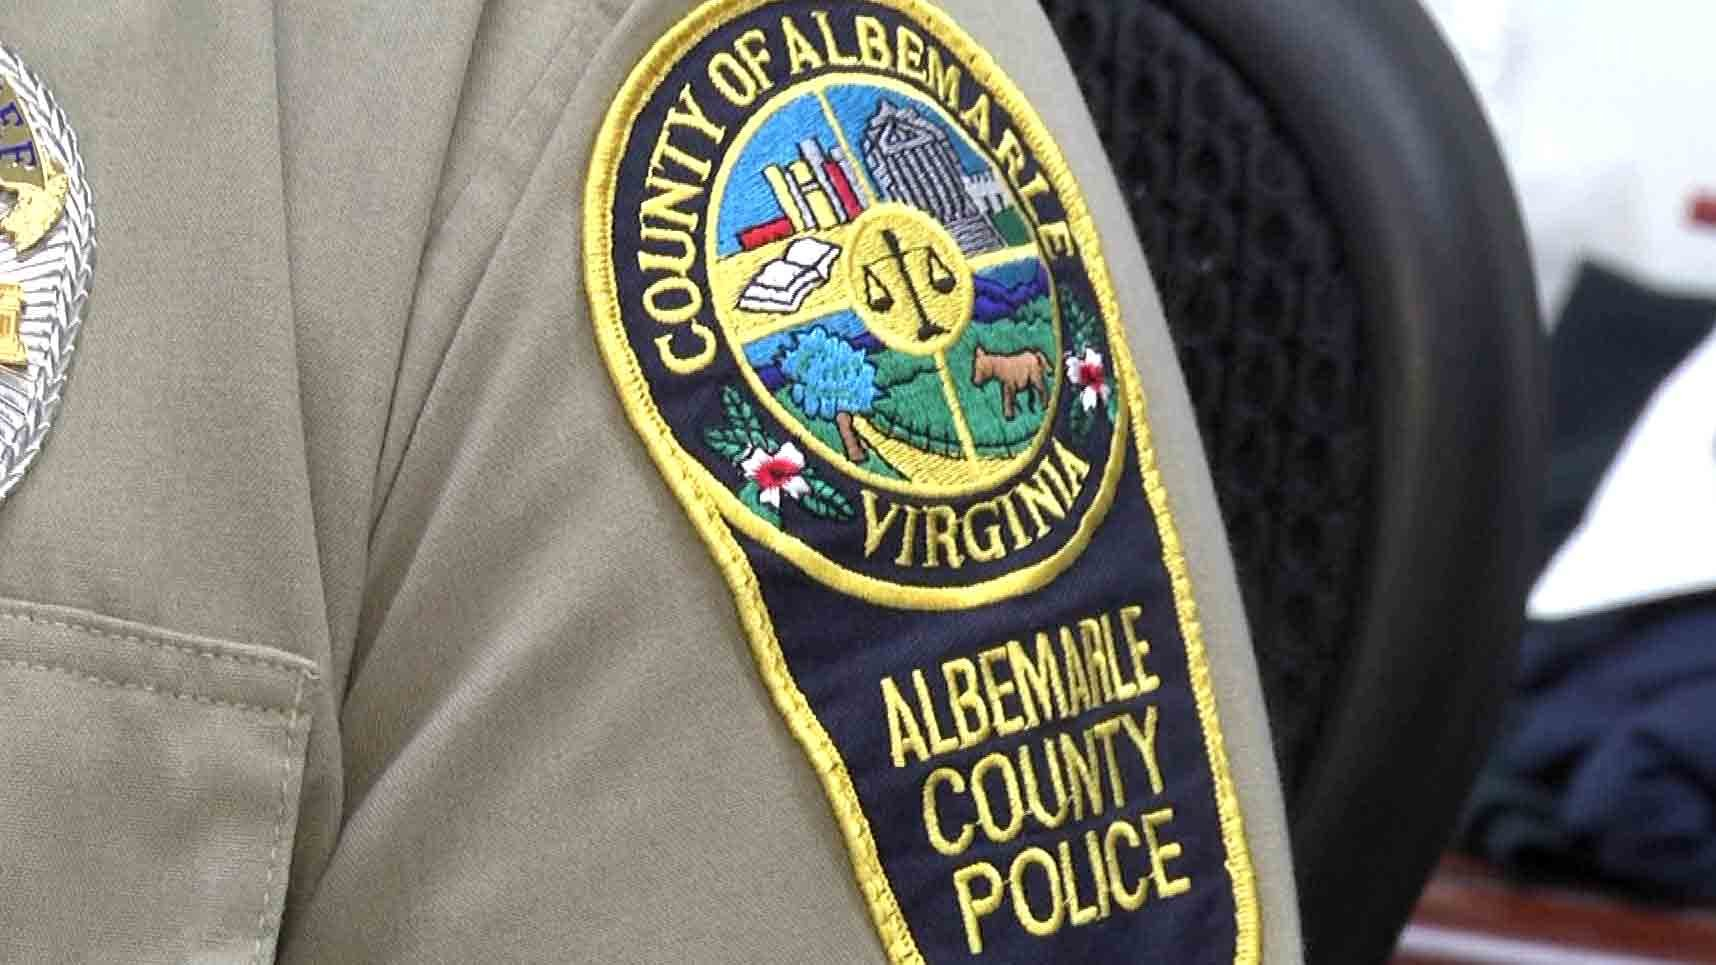 Albemarle County Police Department patch